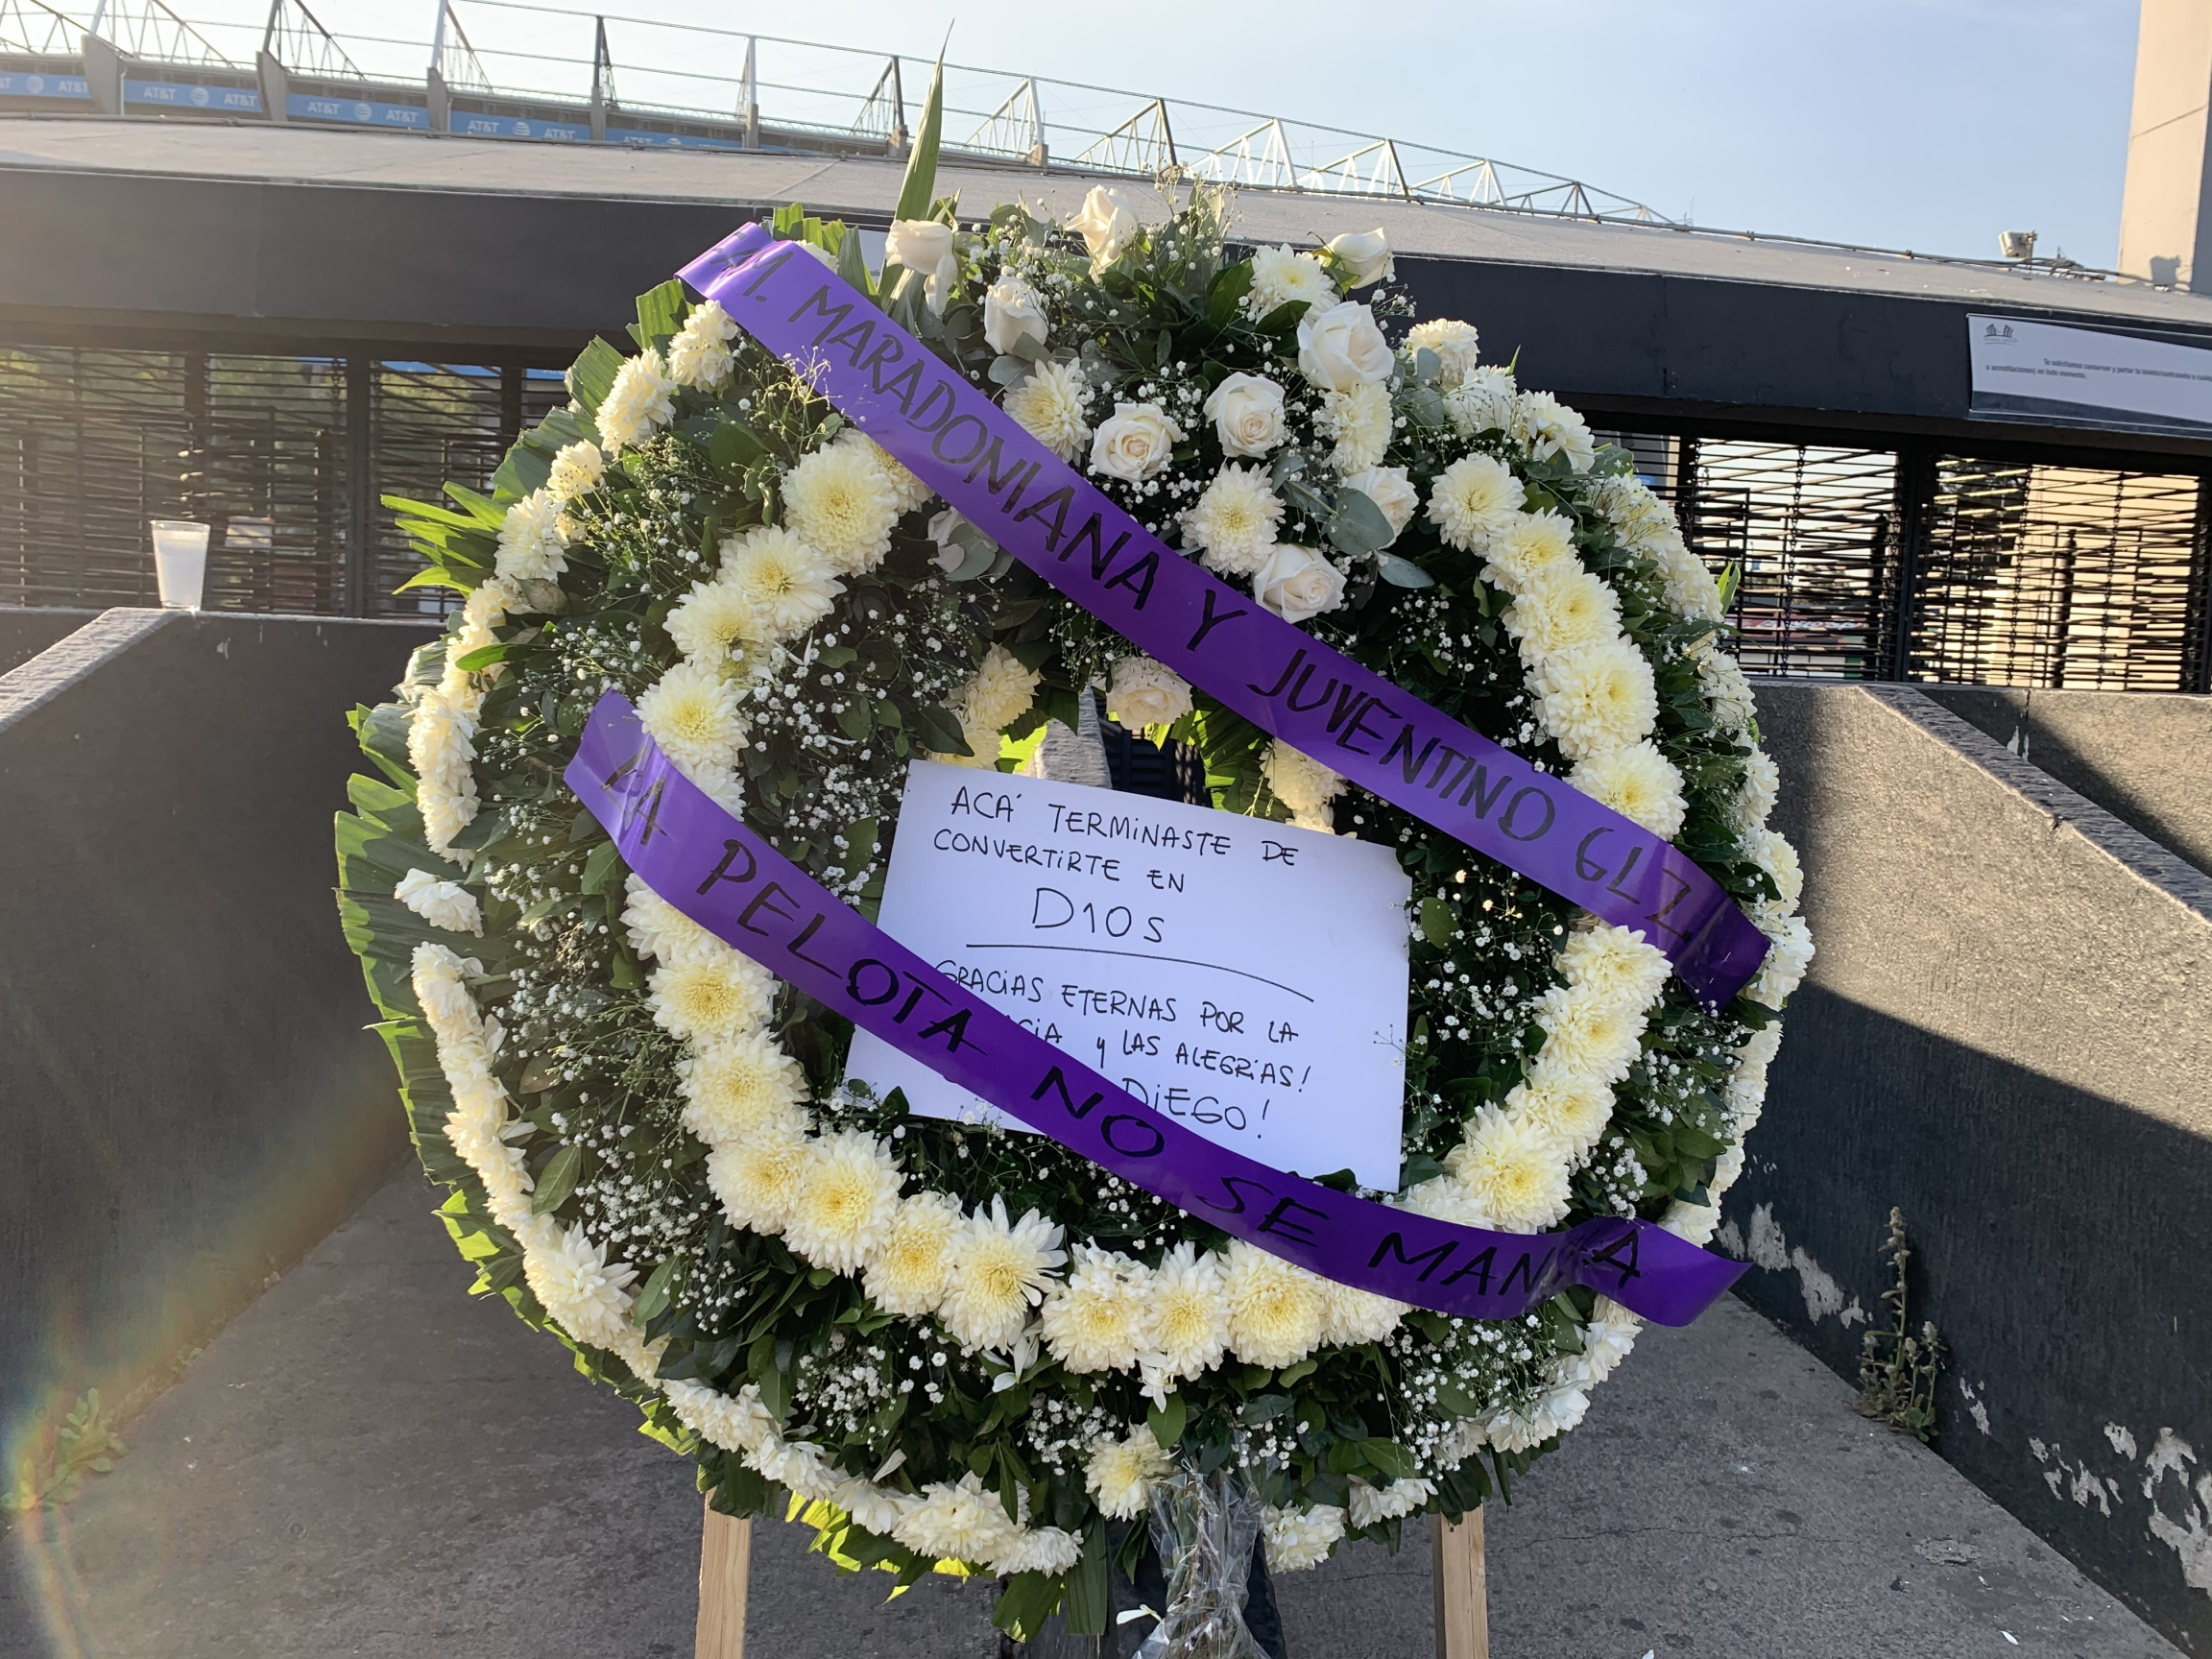 """A wreath for Diego Maradona reading, """"This is where you became God"""" sits outside Estadio Azteca, the stadium where Maradona led Argentina to defeat England in the 1986 World Cup, in Mexico City, Mexico, Nov. 26, 2020."""